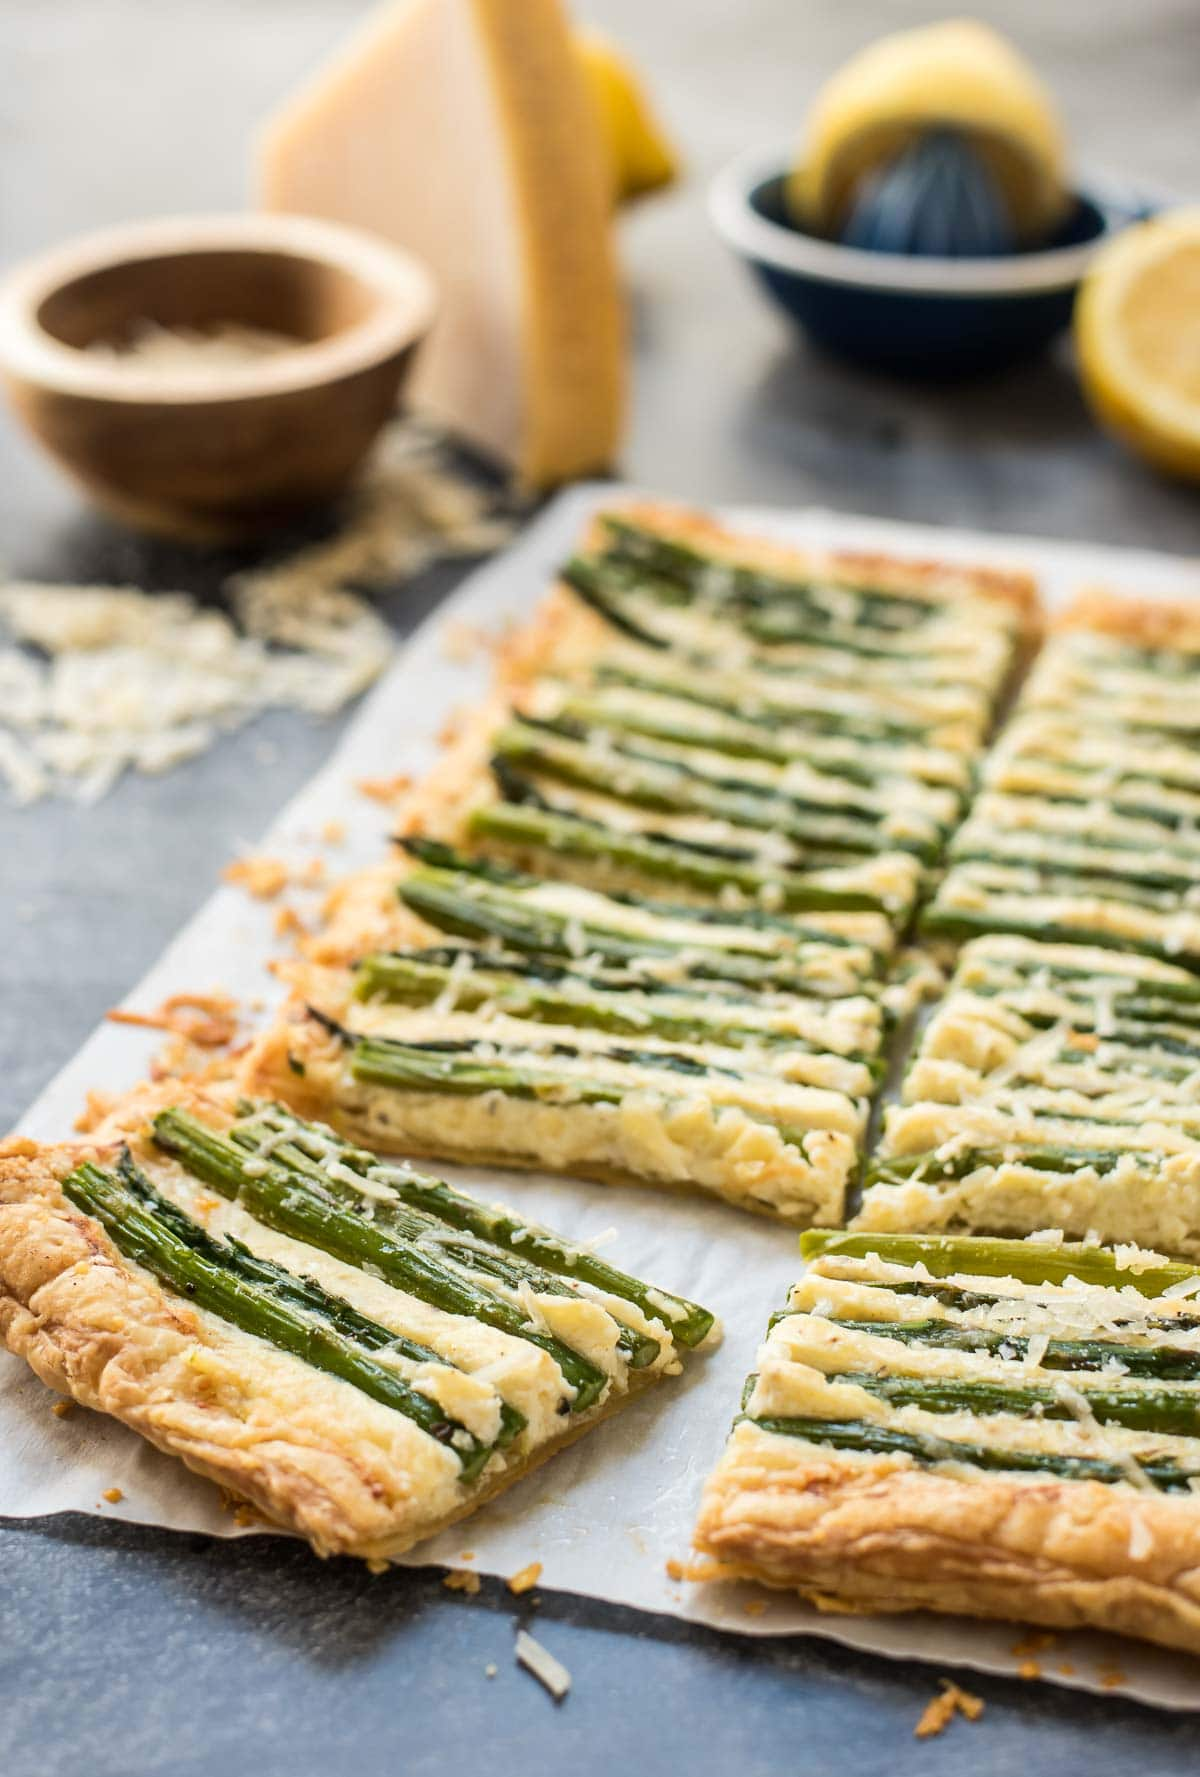 This Parmesan Asparagus Tart is the perfect appetizer for a spring brunch.